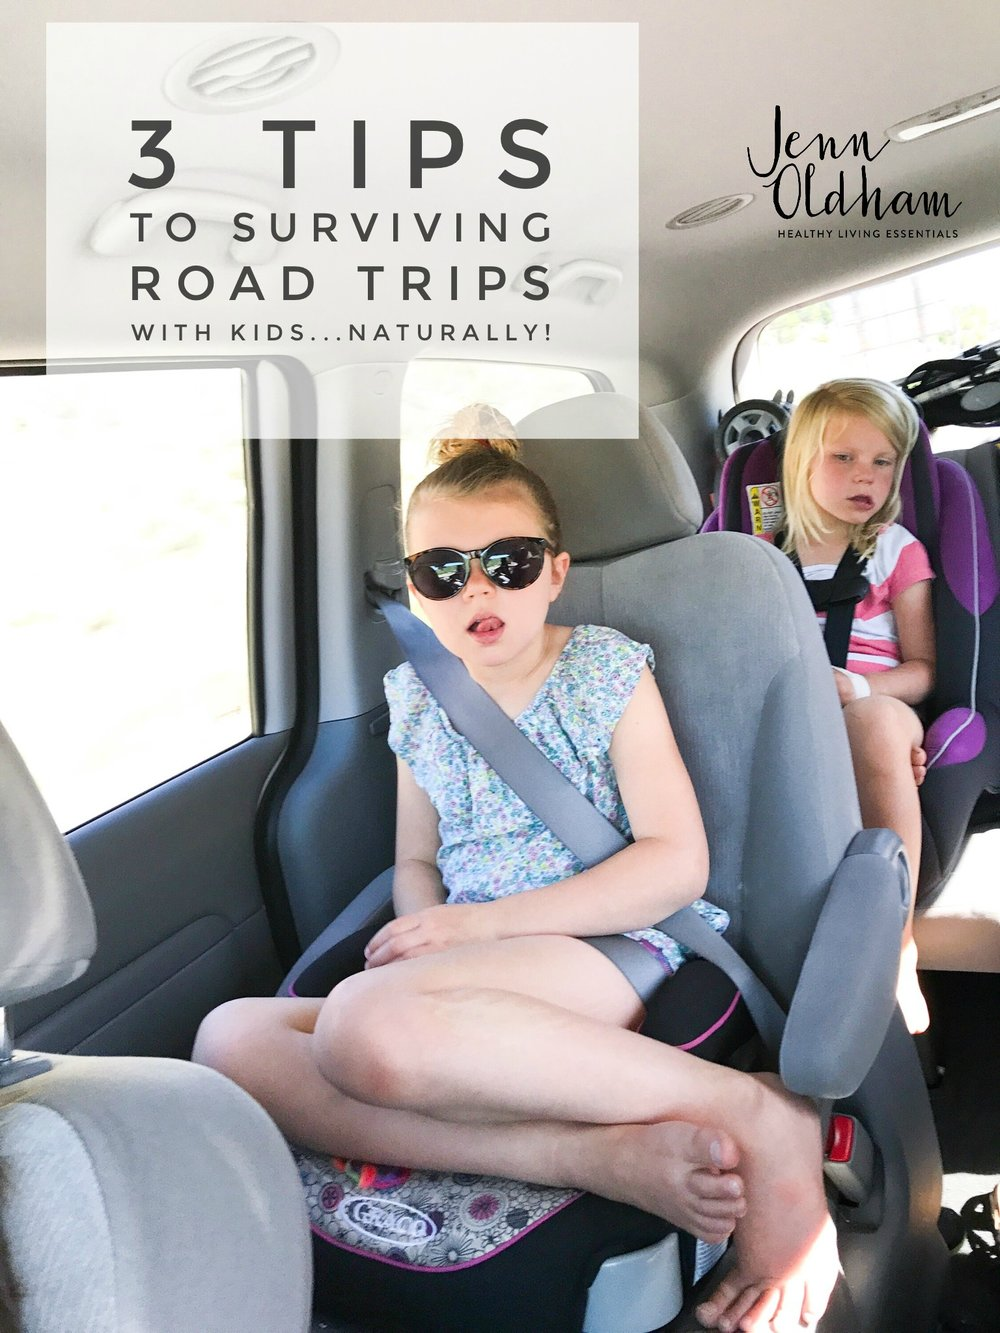 Tips+for+Road+Trips+with+Kids+-+Jenn+Oldham-min.jpg